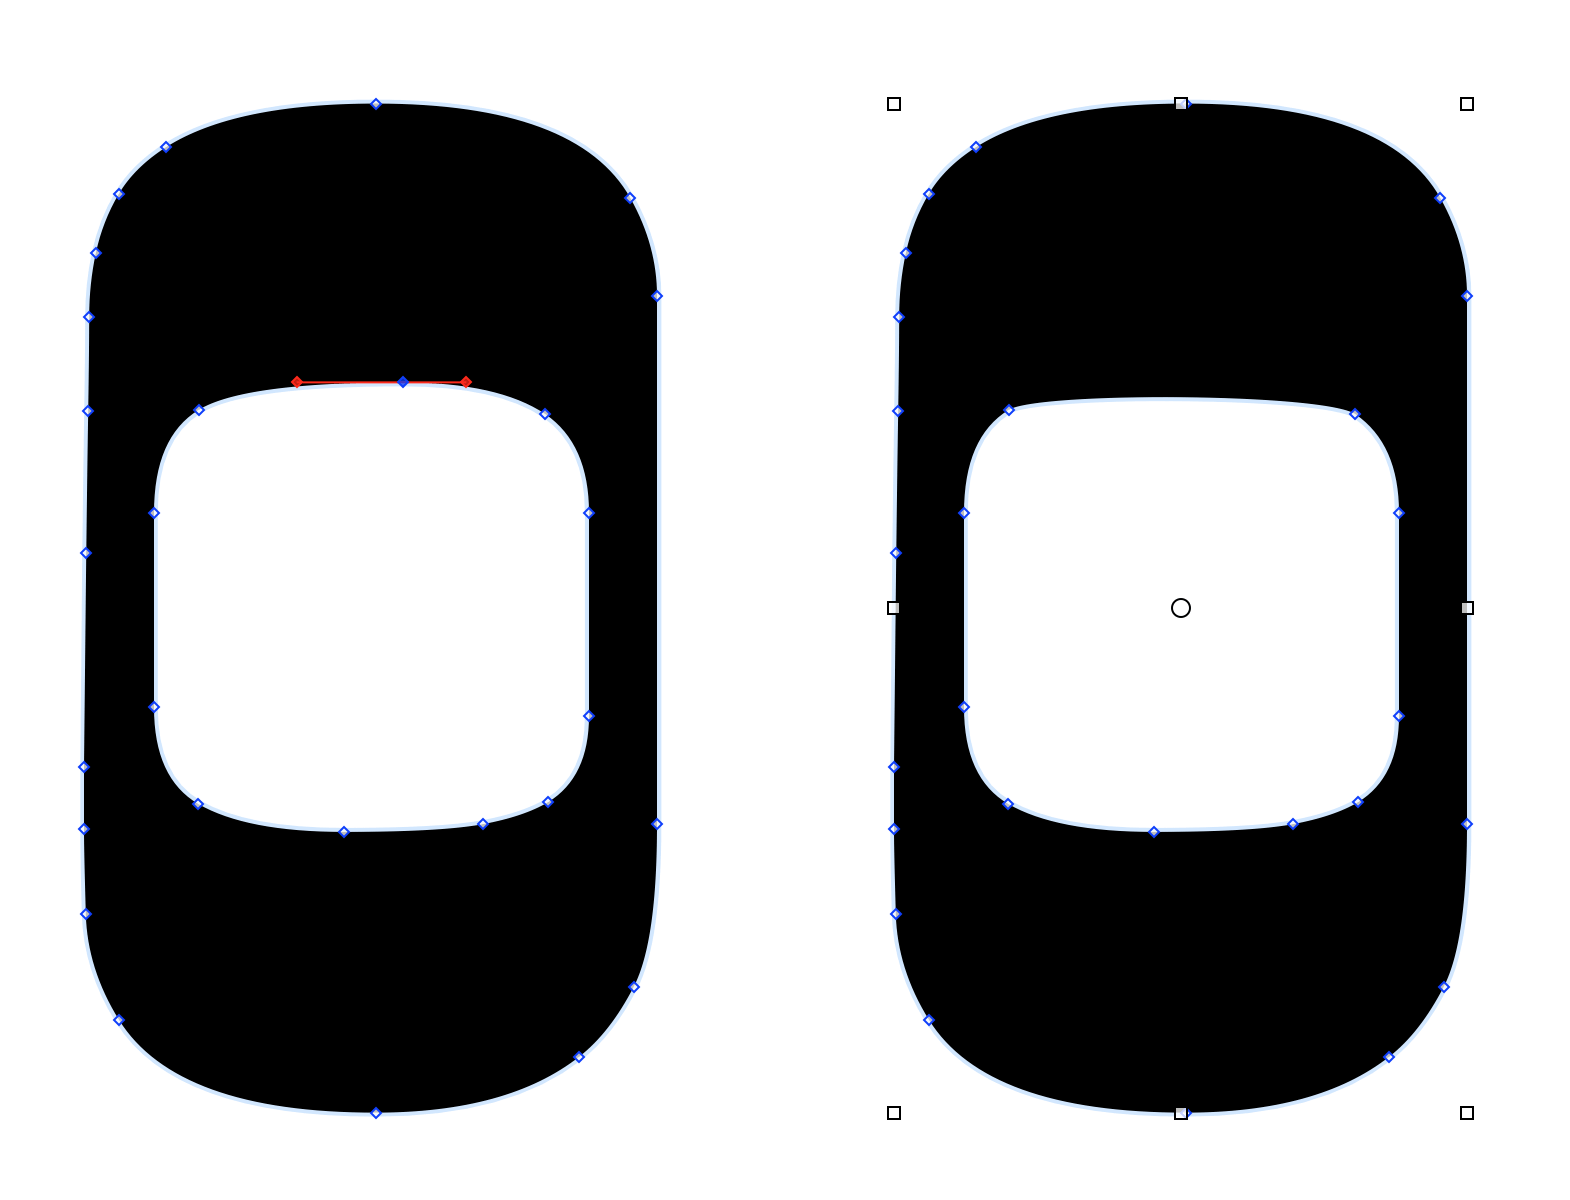 This shows two Oh characters side by side. The Oh on the left has a vector point selected along the top-inside of the shape. The Oh on the right shows that same Oh character after the selected vector point has been deleted.